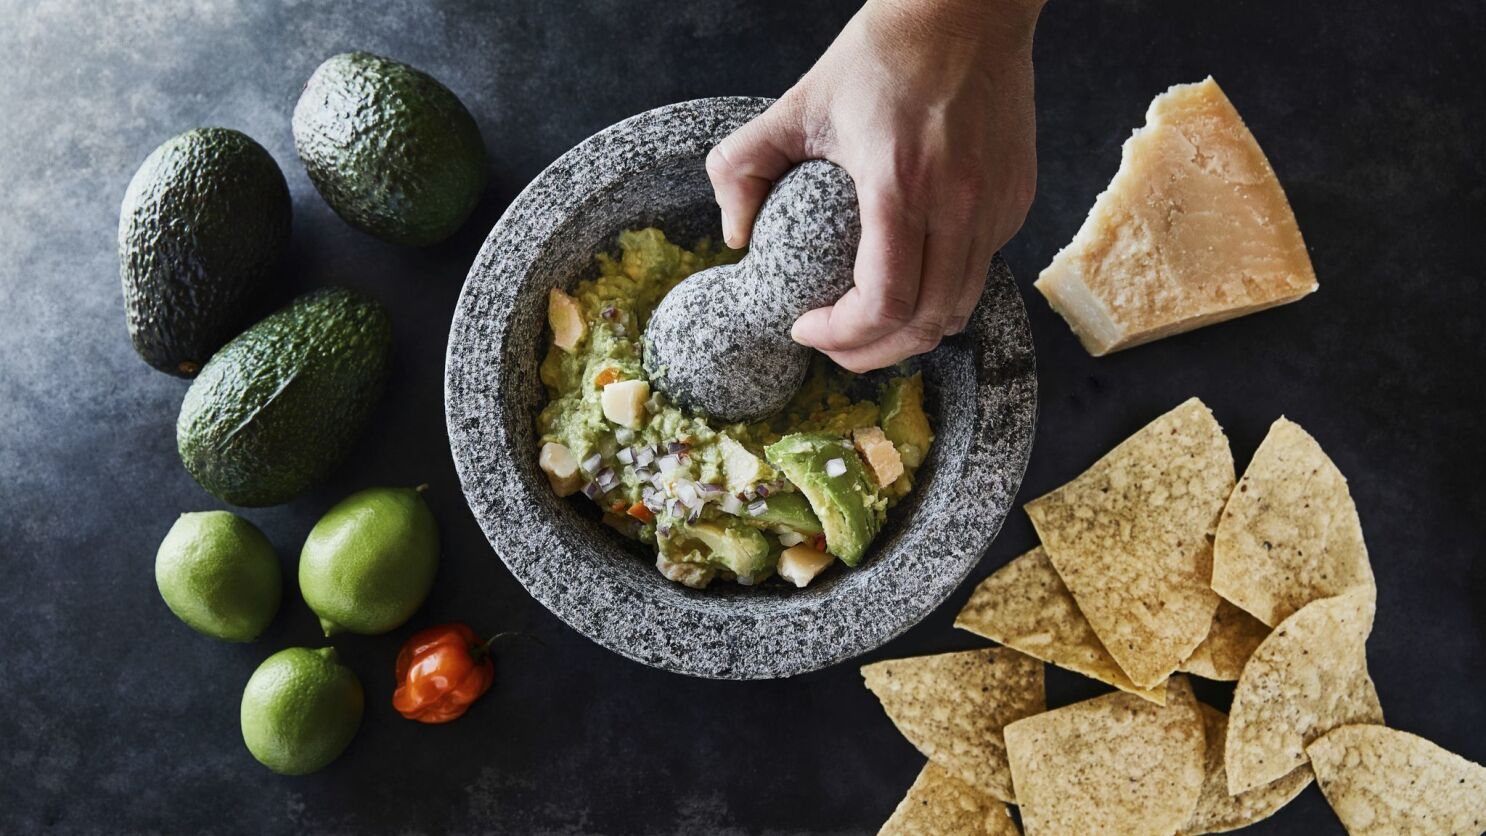 San Diegans Share Their Best Guacamole Recipes For The Super Bowl The San Diego Union Tribune